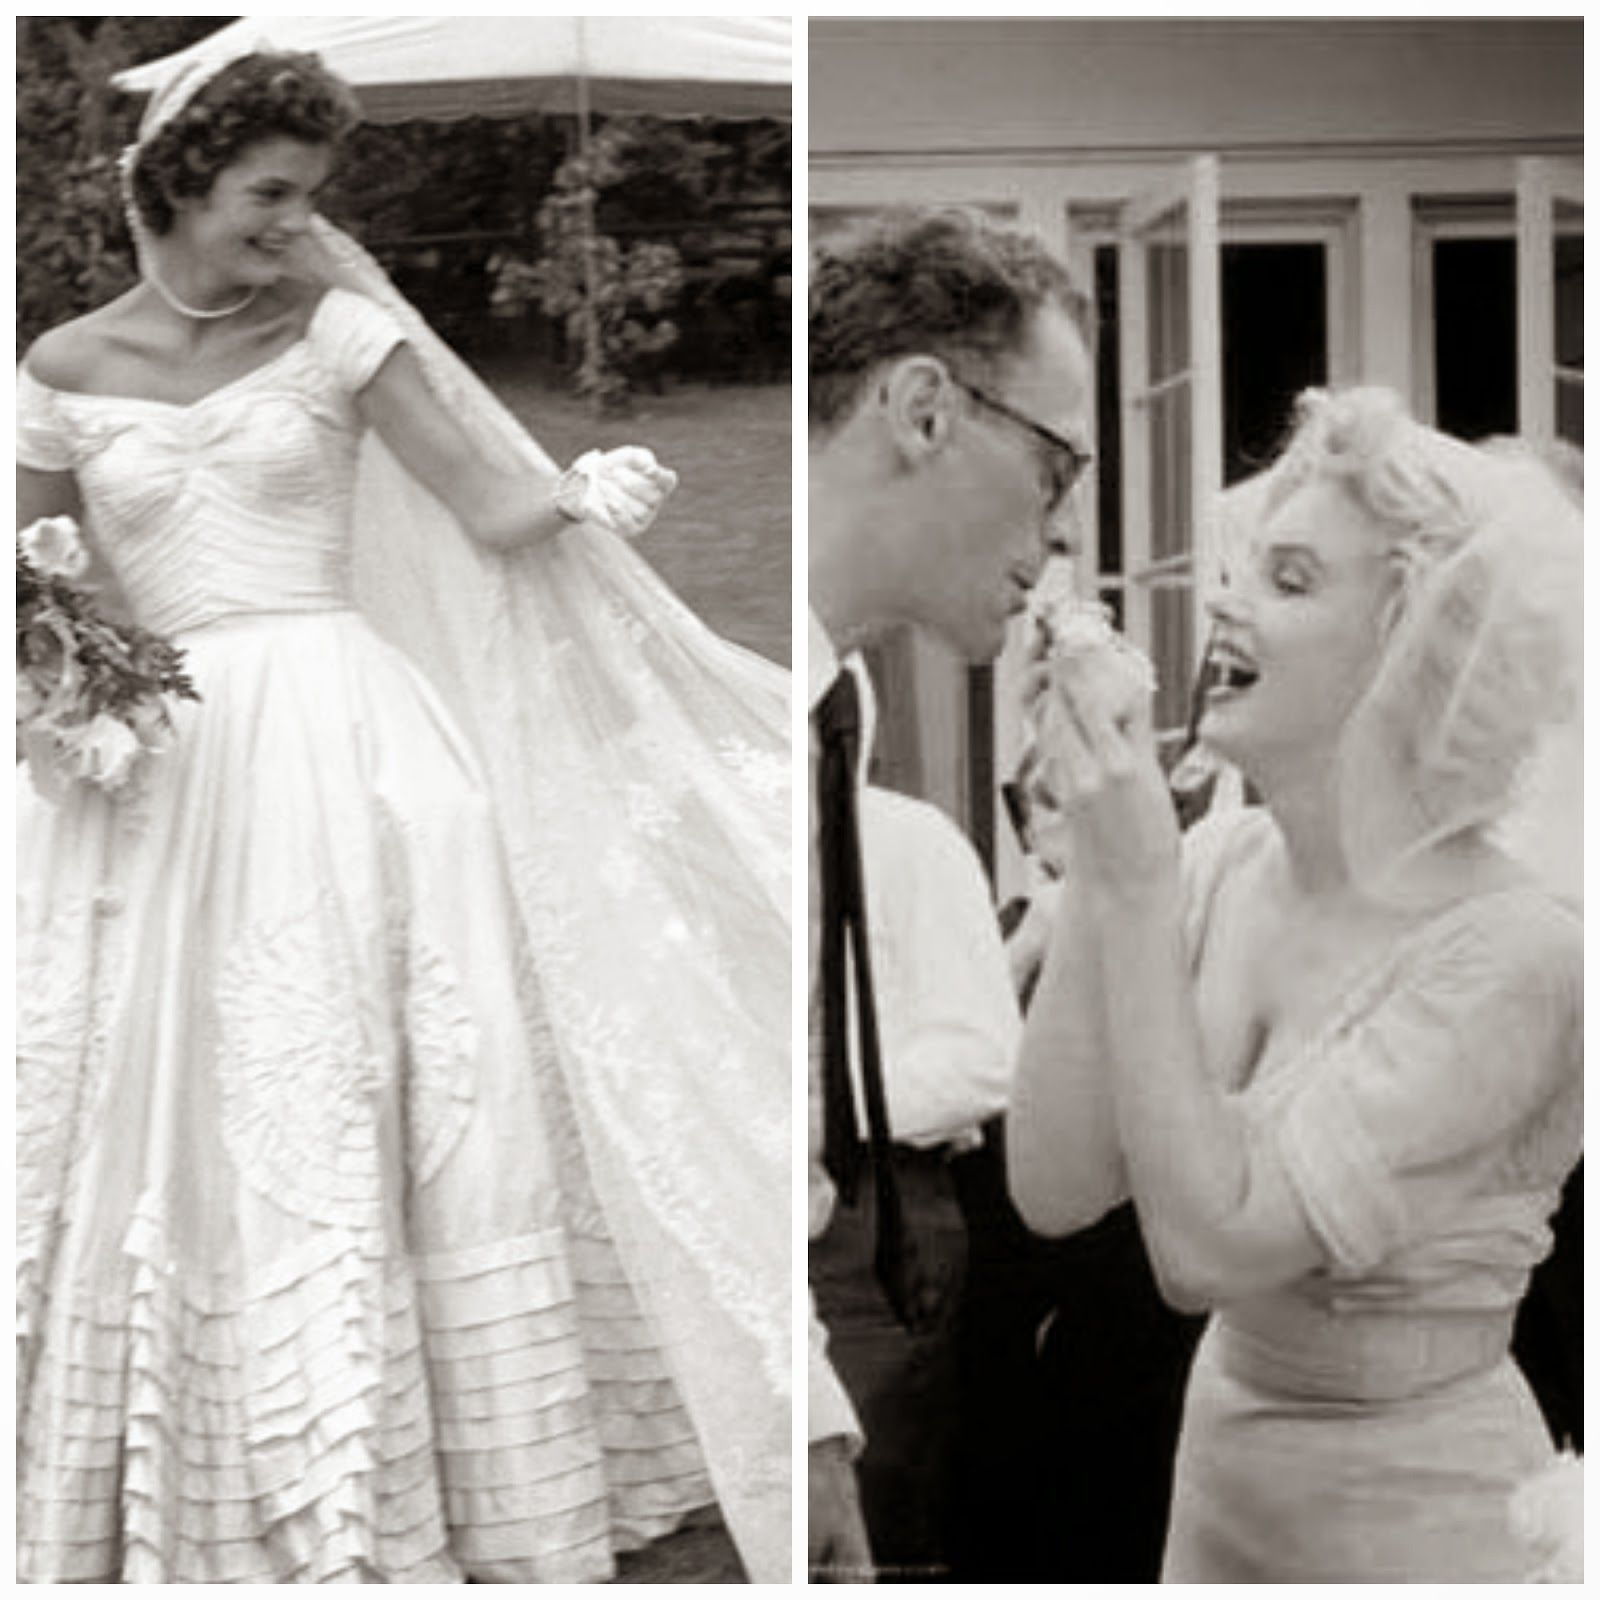 Monroe Marilyn style wedding dress pictures recommend dress for autumn in 2019